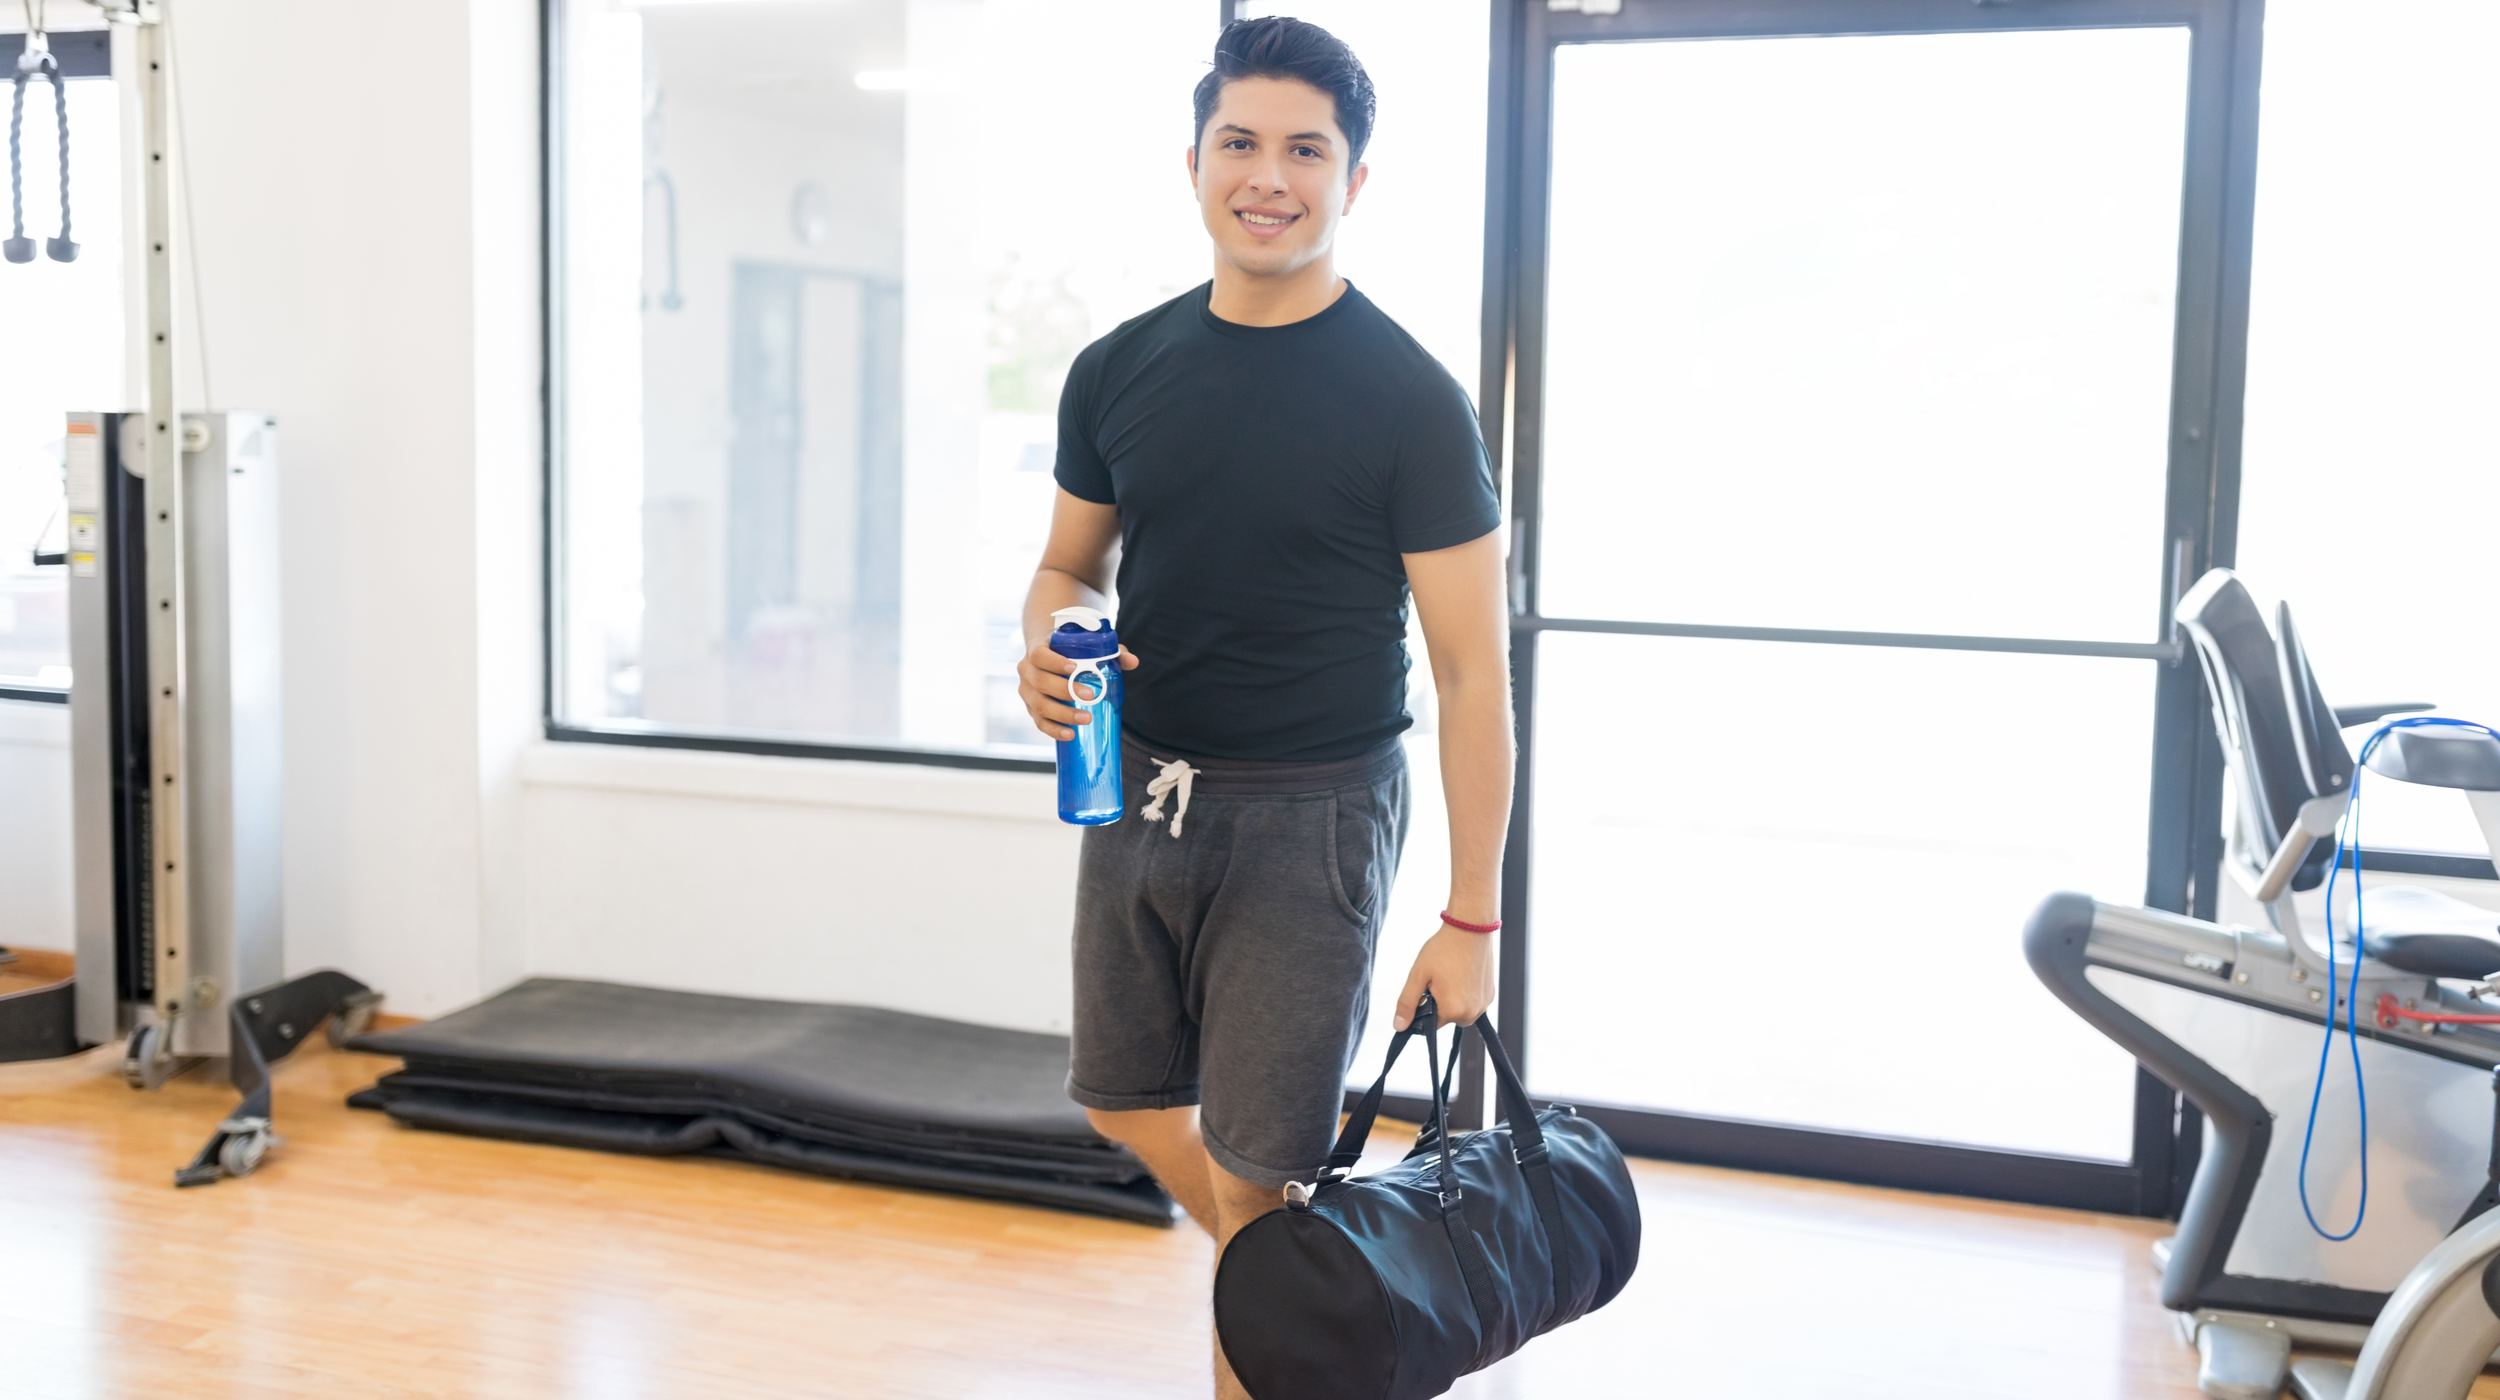 First Time at a Gym? Here's What to Expect